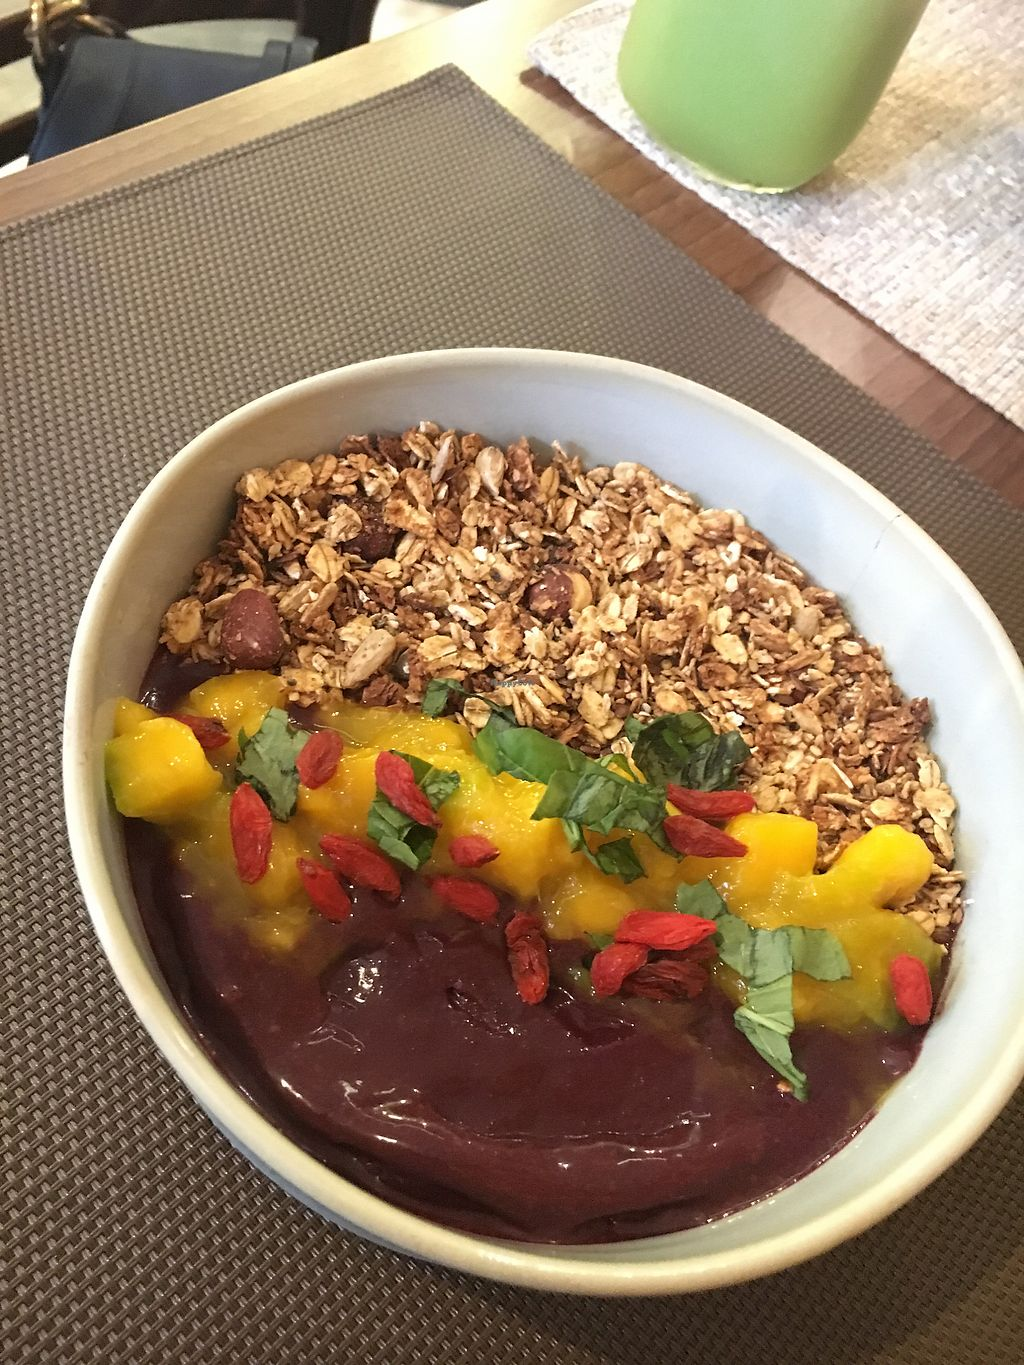 """Photo of Frutaria  by <a href=""""/members/profile/OdeGouge"""">OdeGouge</a> <br/>Açaí bowl <br/> April 21, 2018  - <a href='/contact/abuse/image/112712/389071'>Report</a>"""